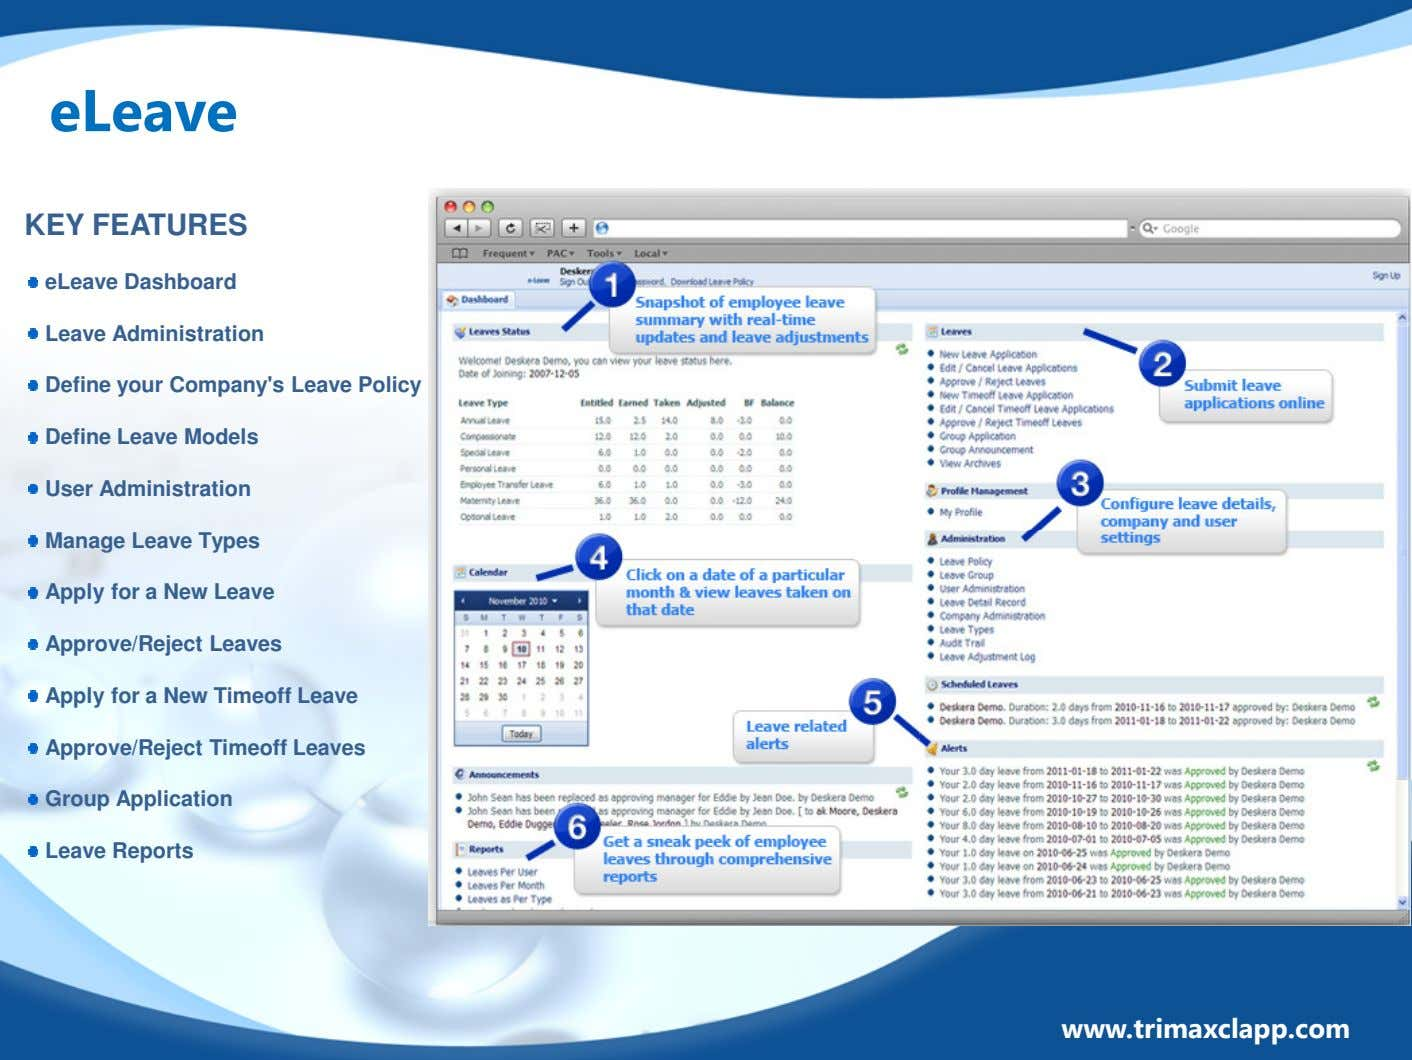 eLeave KEY FEATURES eLeave Dashboard Leave Administration Define your Company's Leave Policy Define Leave Models